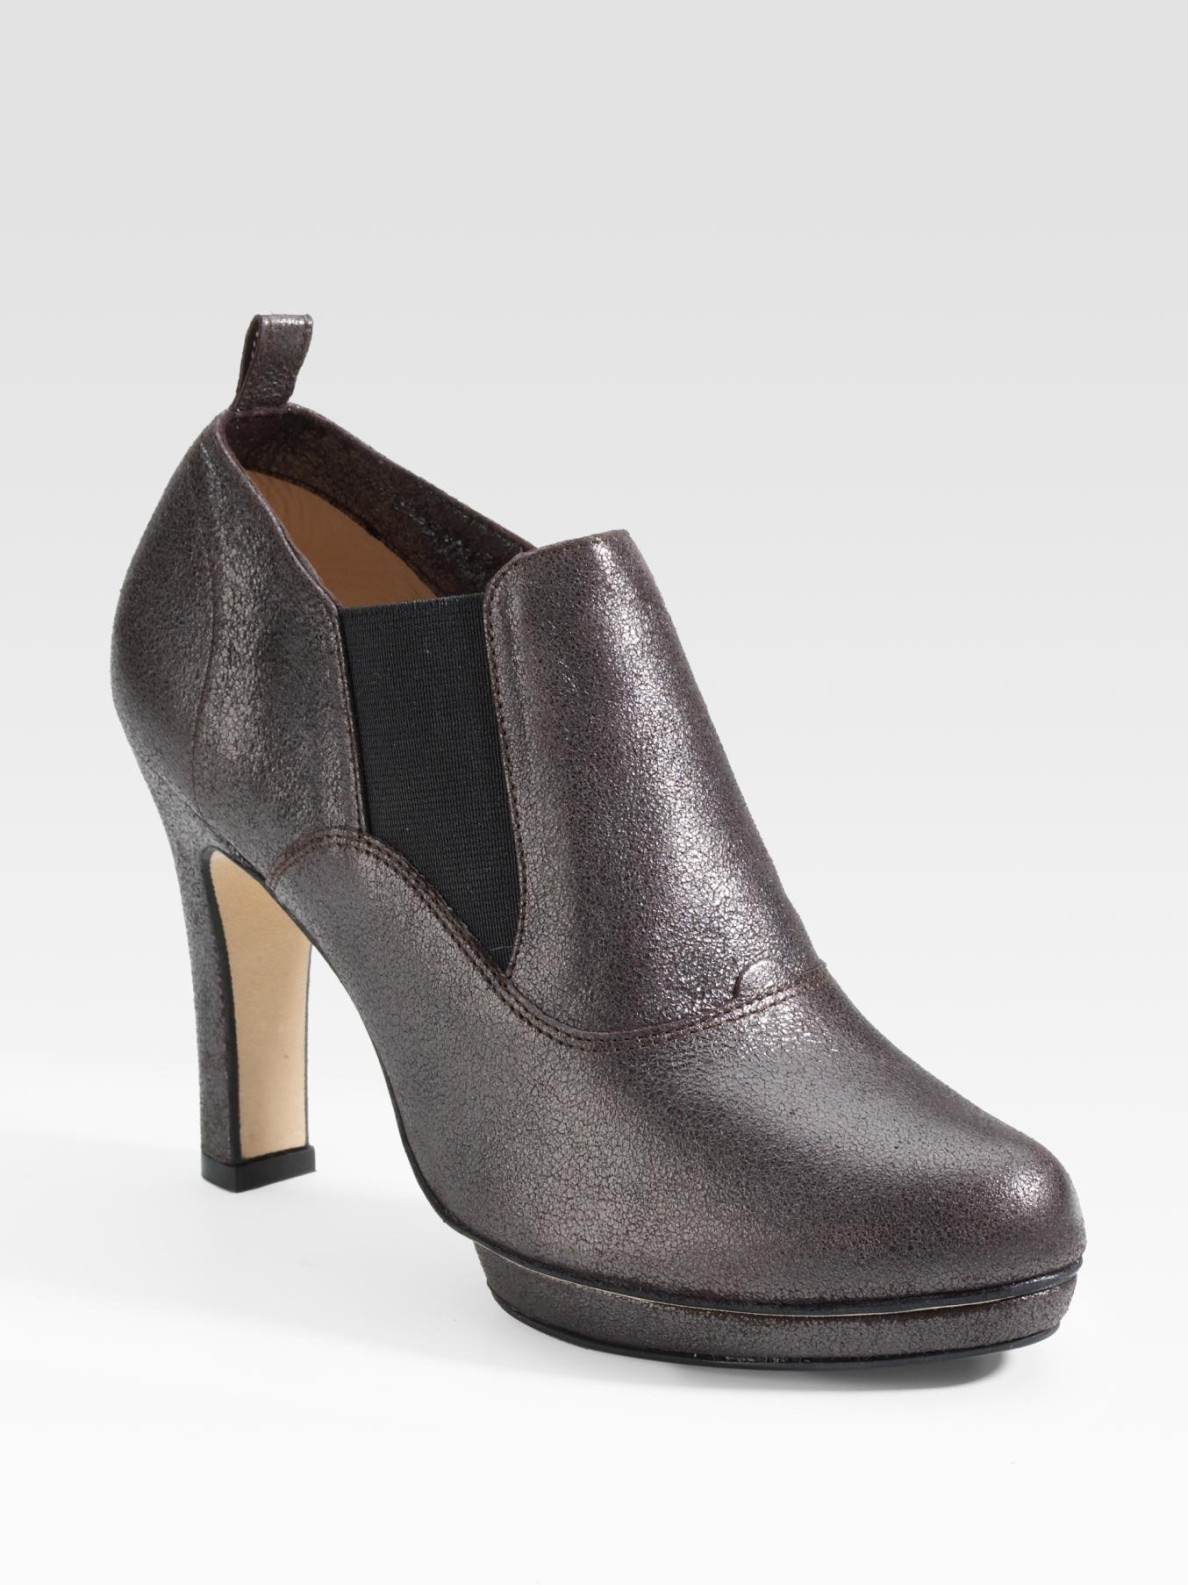 Lyst Repetto Kiss High Heel Ankle Boots In Black